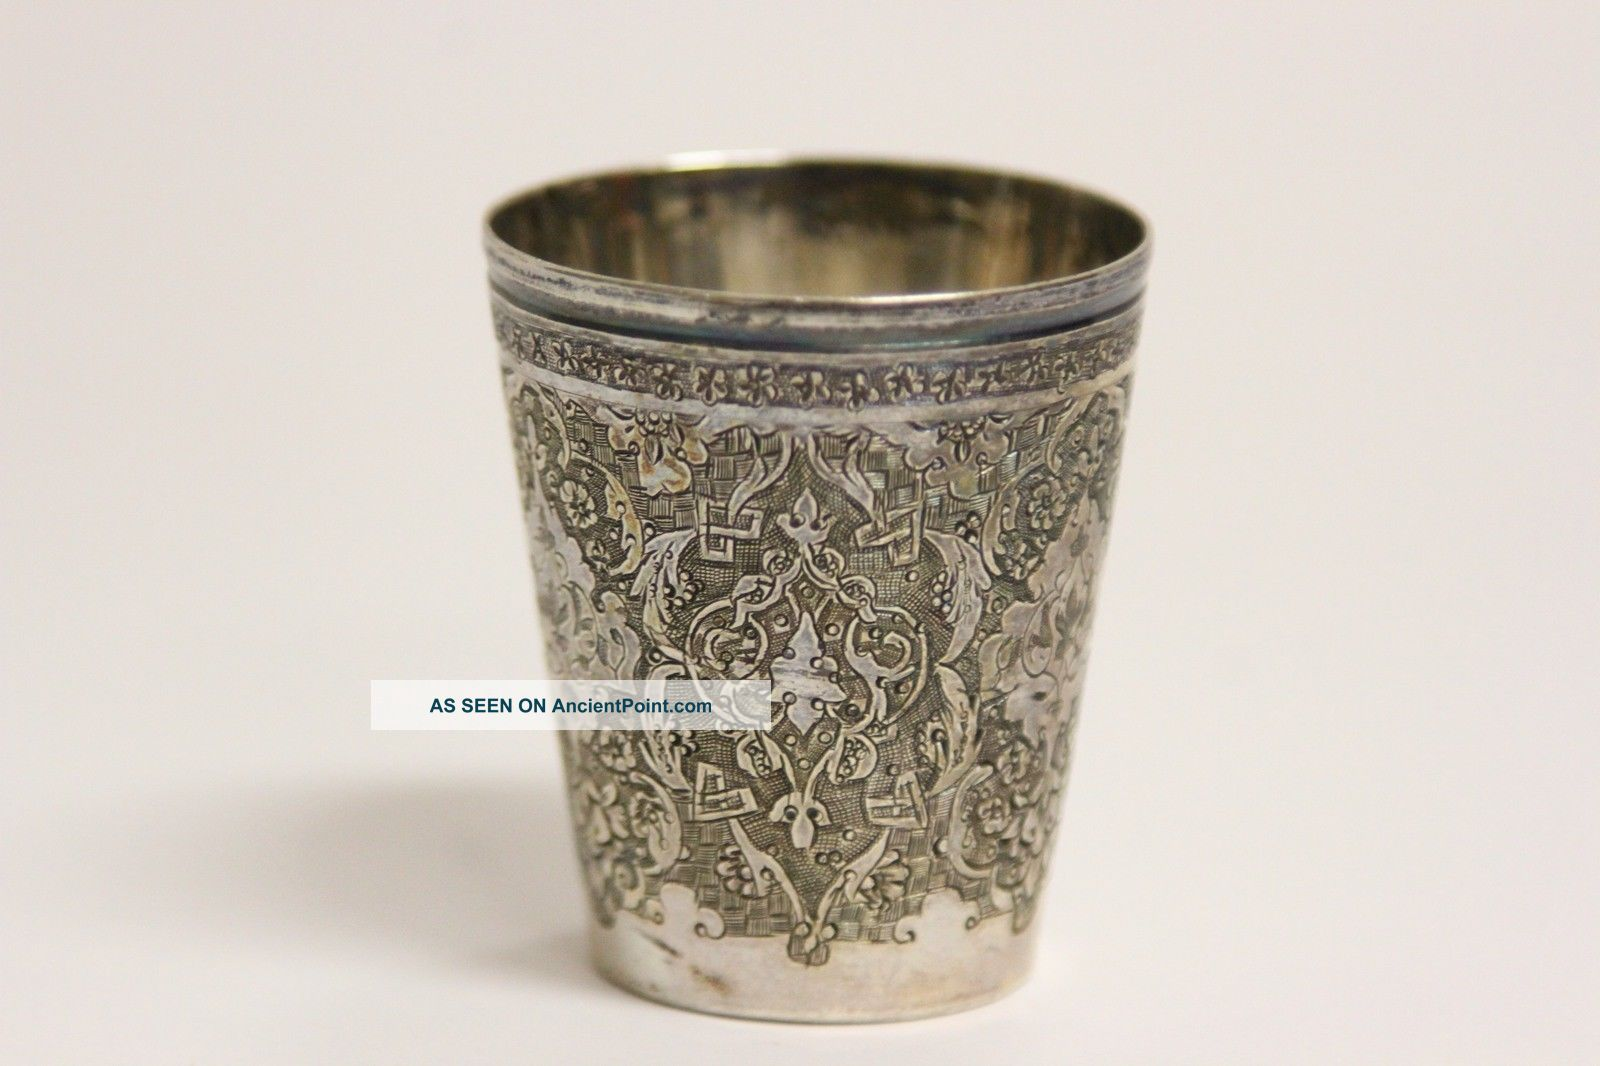 Antique Highly Detailed Ornate Small Silver Cup Sterling? Silverplate Silver Alloys (.800-.899) photo